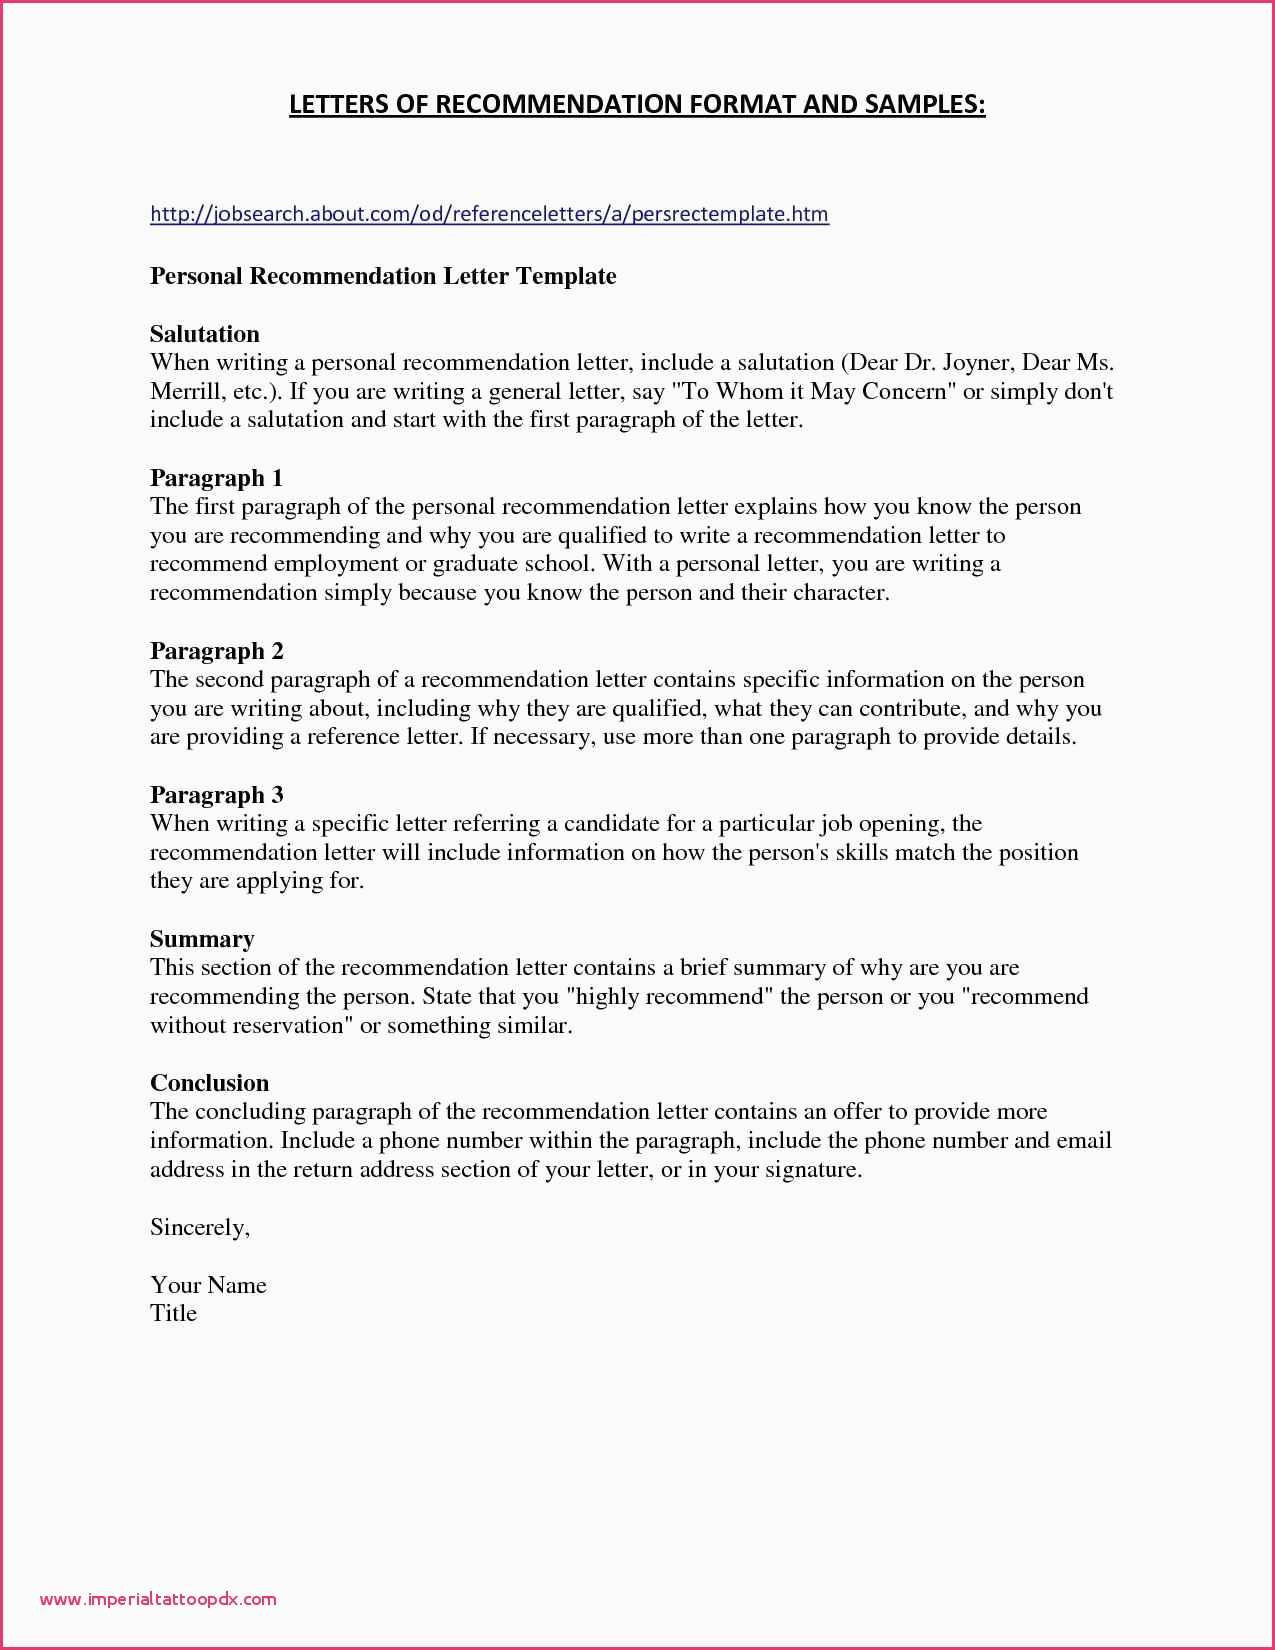 029 Career Research Paper Example How To Start Examples Awesome Business Correspondence Letter Sample Fresh Cover For Unusual Dream Apa Pdf Full